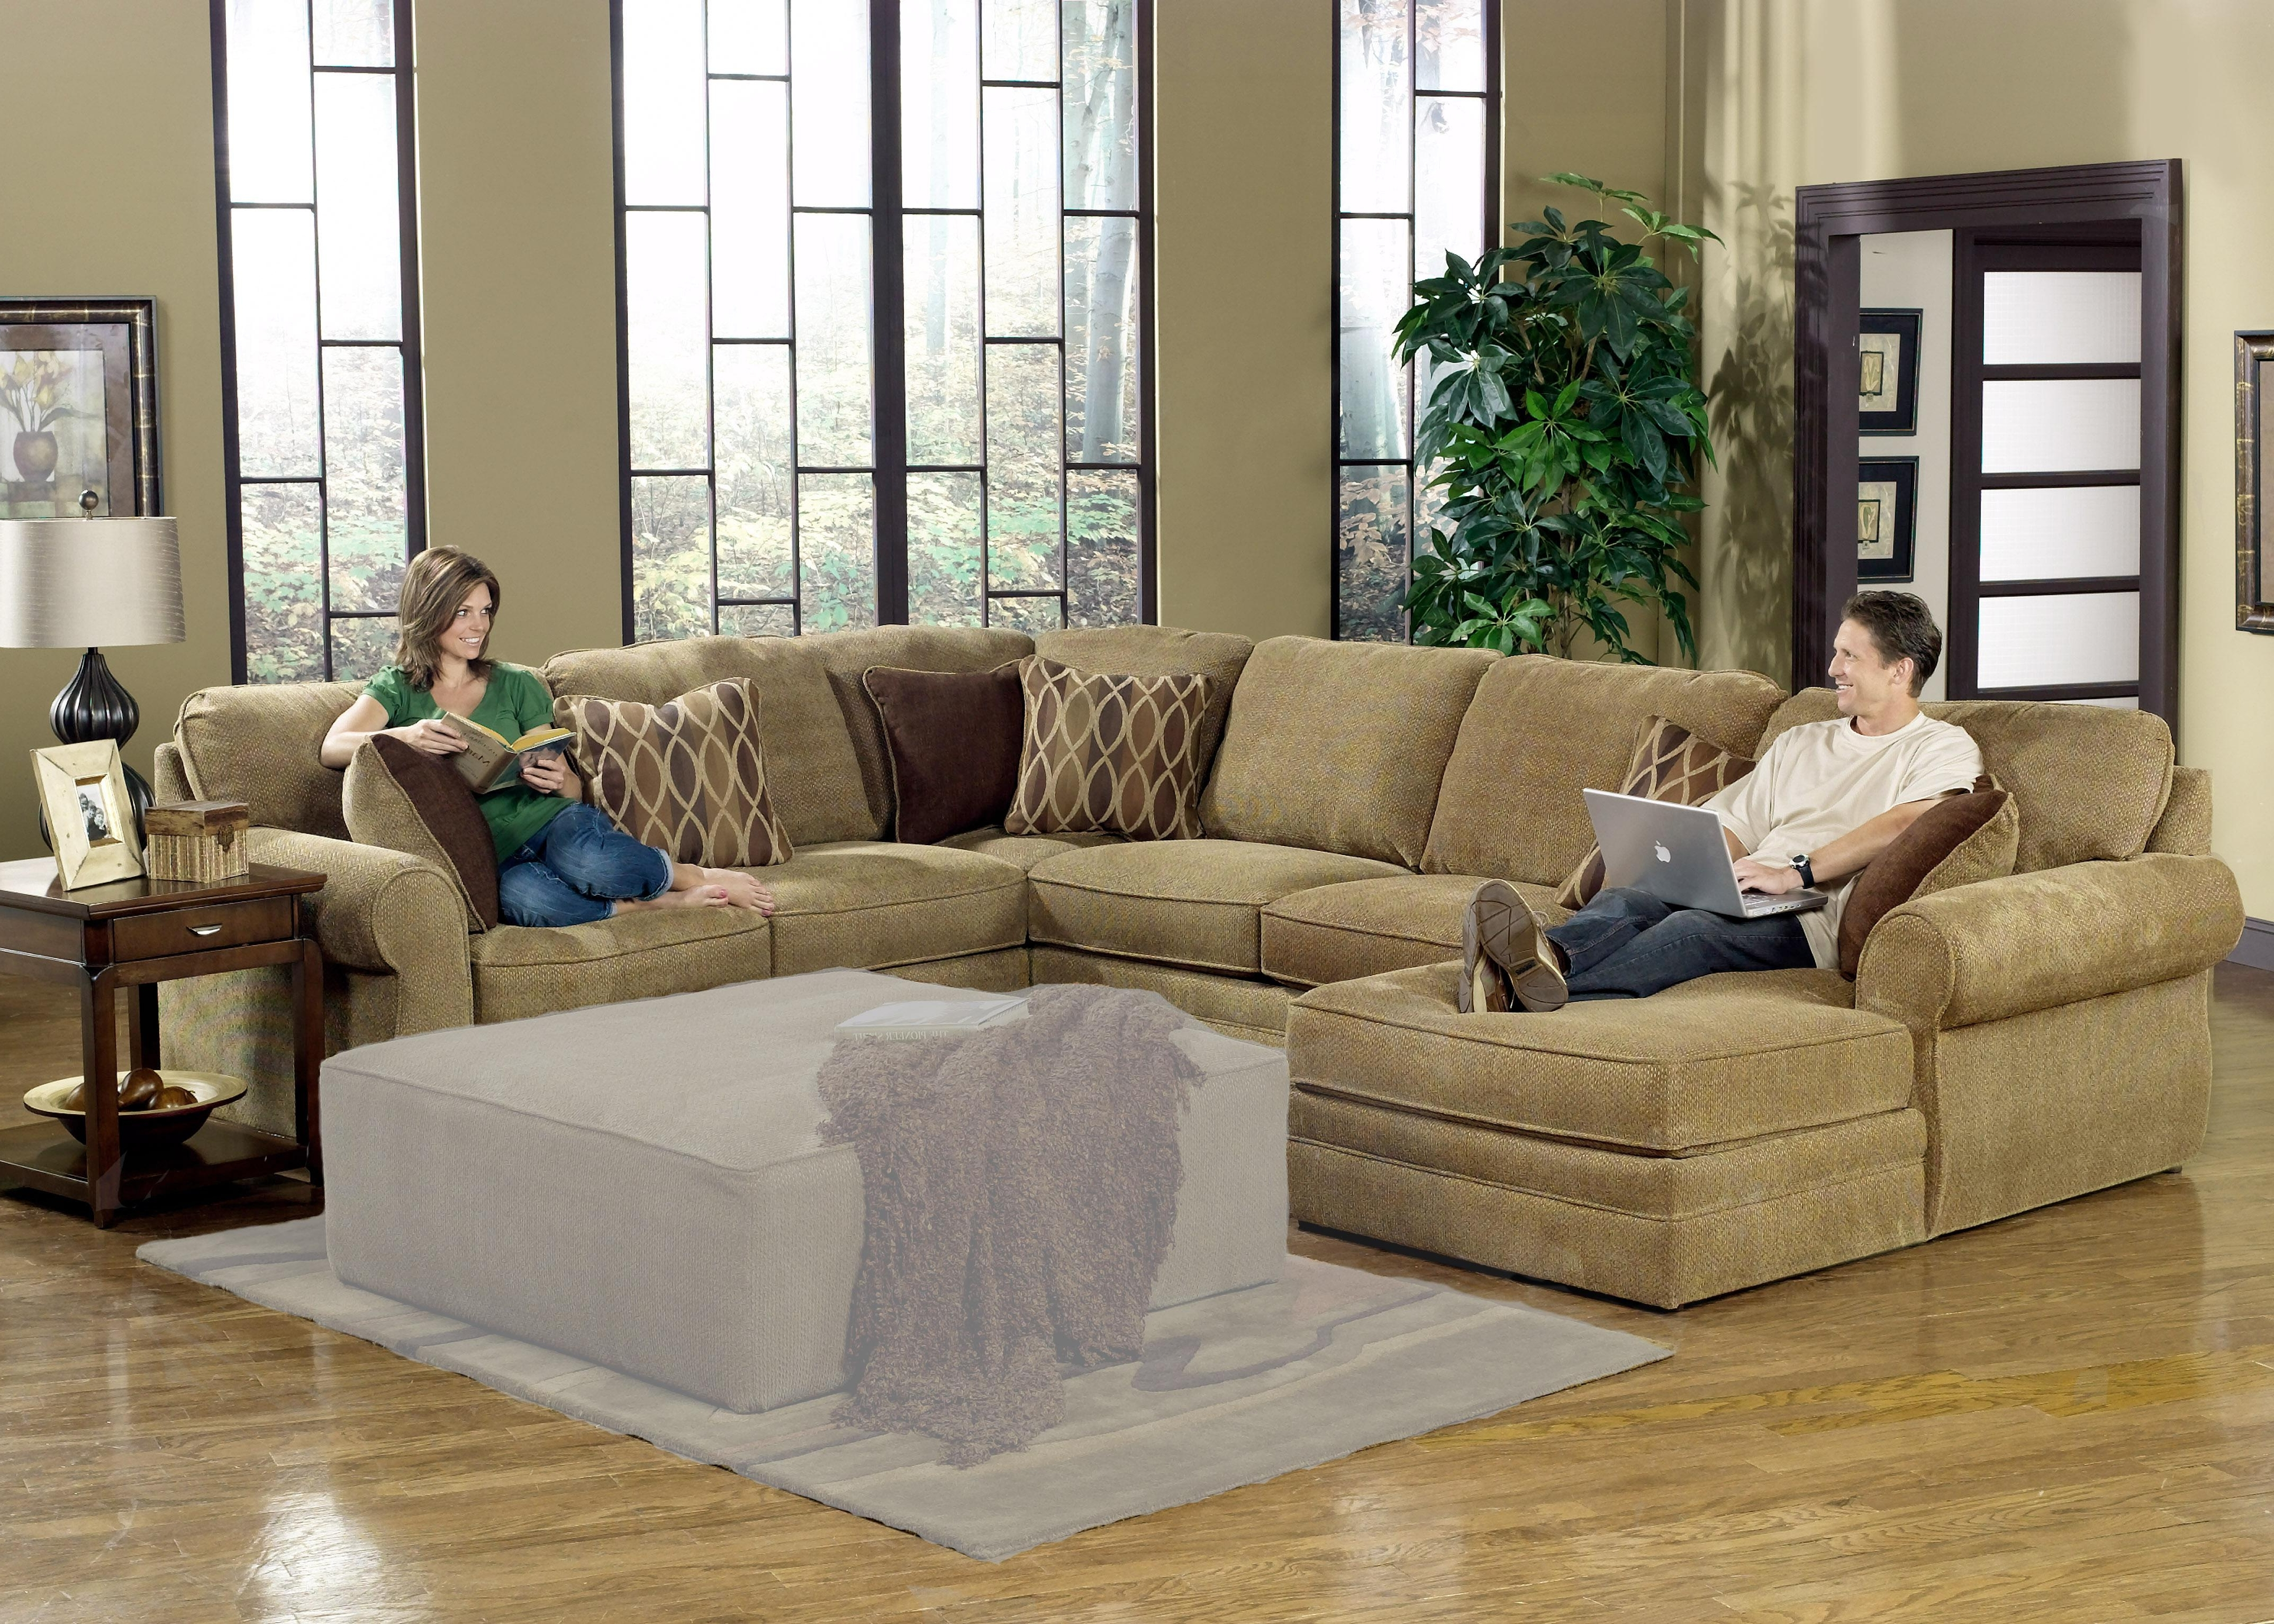 Sectional Sofa Design: Adorable Large U Shaped Sectional Sofa Best Intended For Most Current Big U Shaped Sectionals (View 7 of 15)